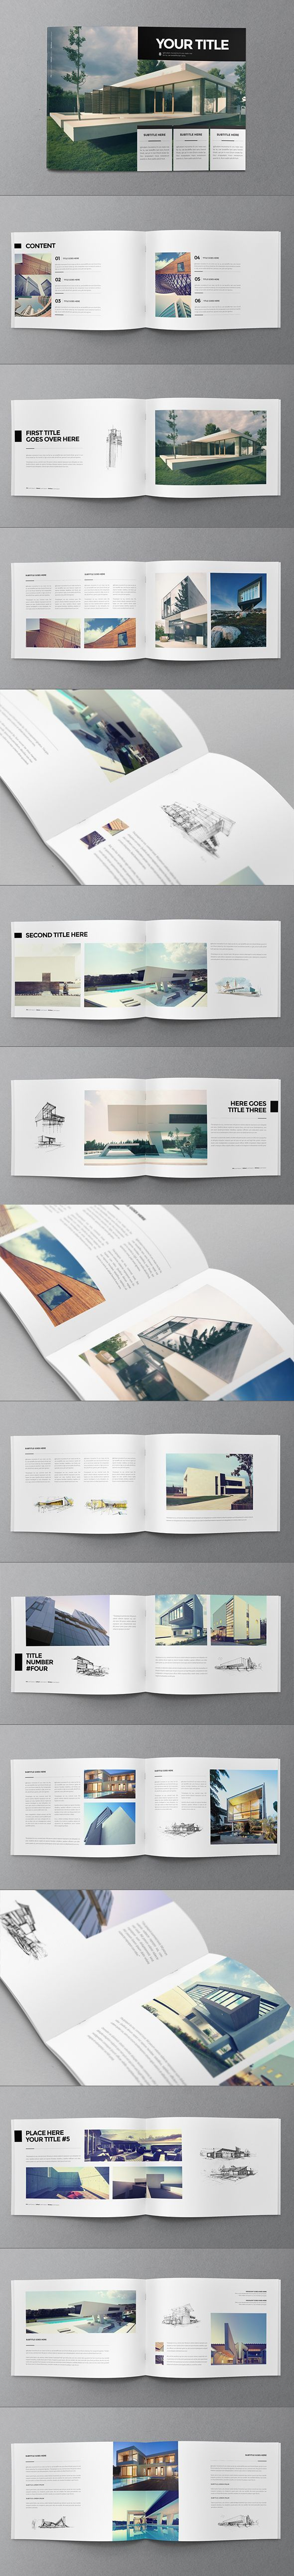 Minimal Architecture Brochure. Download here: http://graphicriver.net/item/minimal-architecture-brochure/9936143?ref=abradesign #design #brochure: